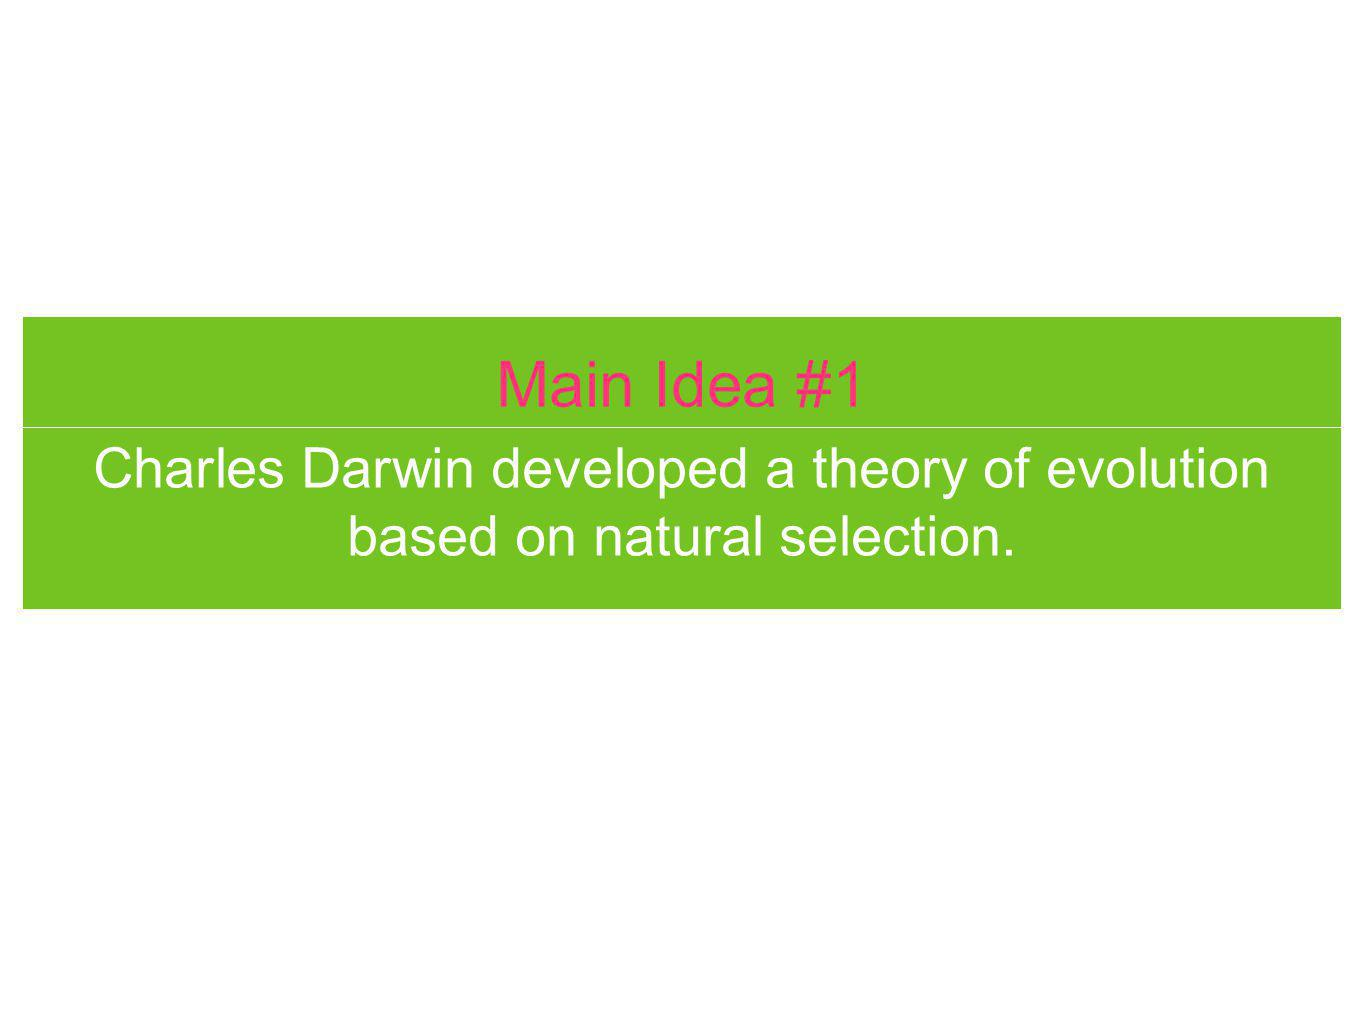 Main Idea #1 Charles Darwin developed a theory of evolution based on natural selection.